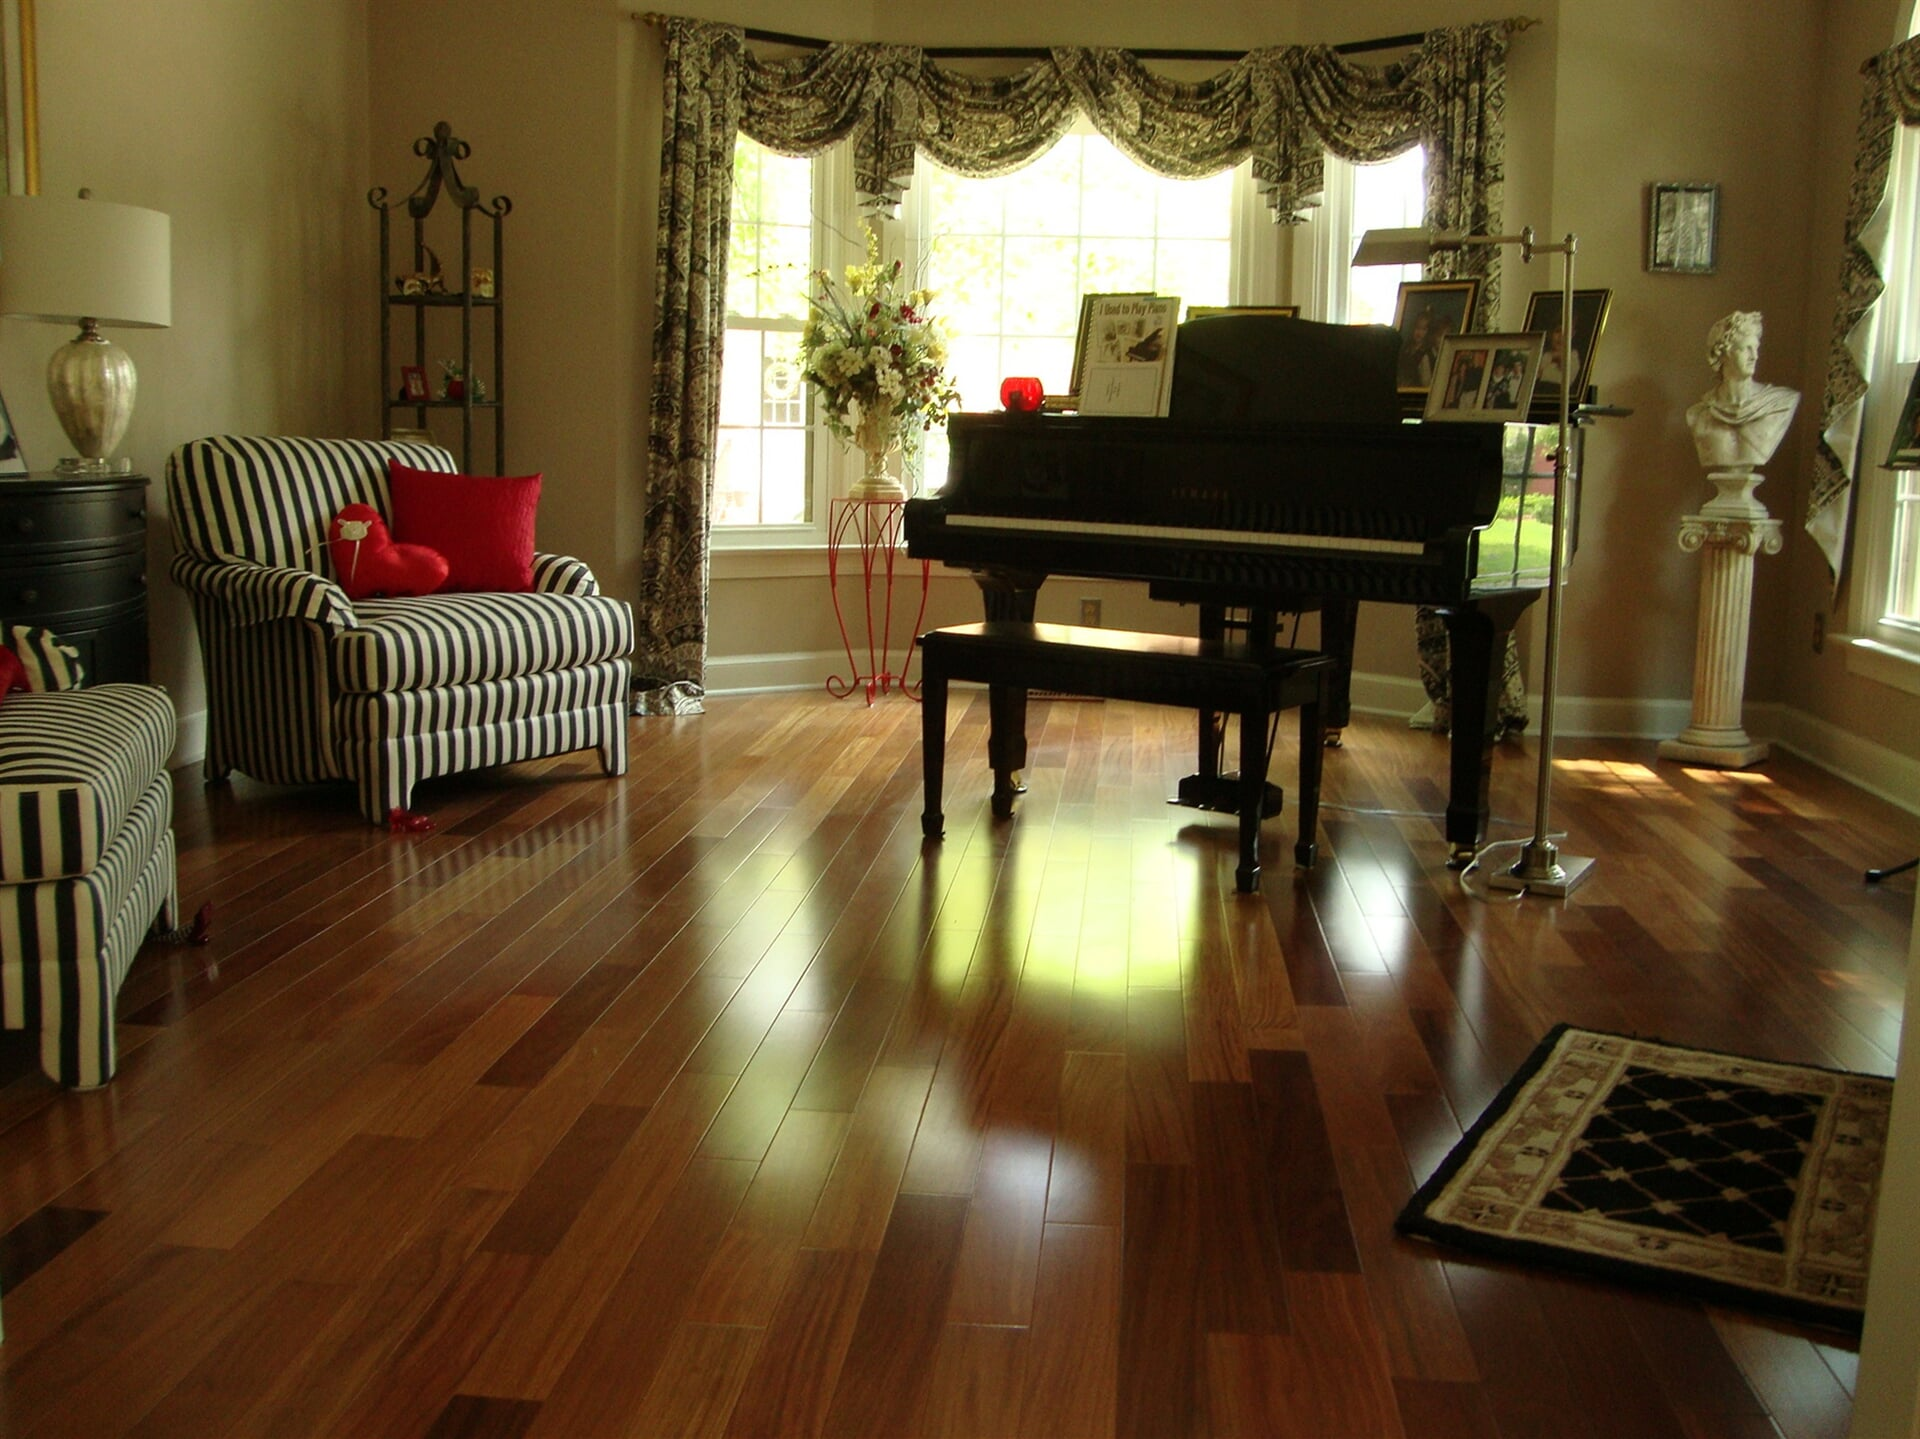 Multi-tone hardwood floors in Moyock, VA from Floors Unlimited